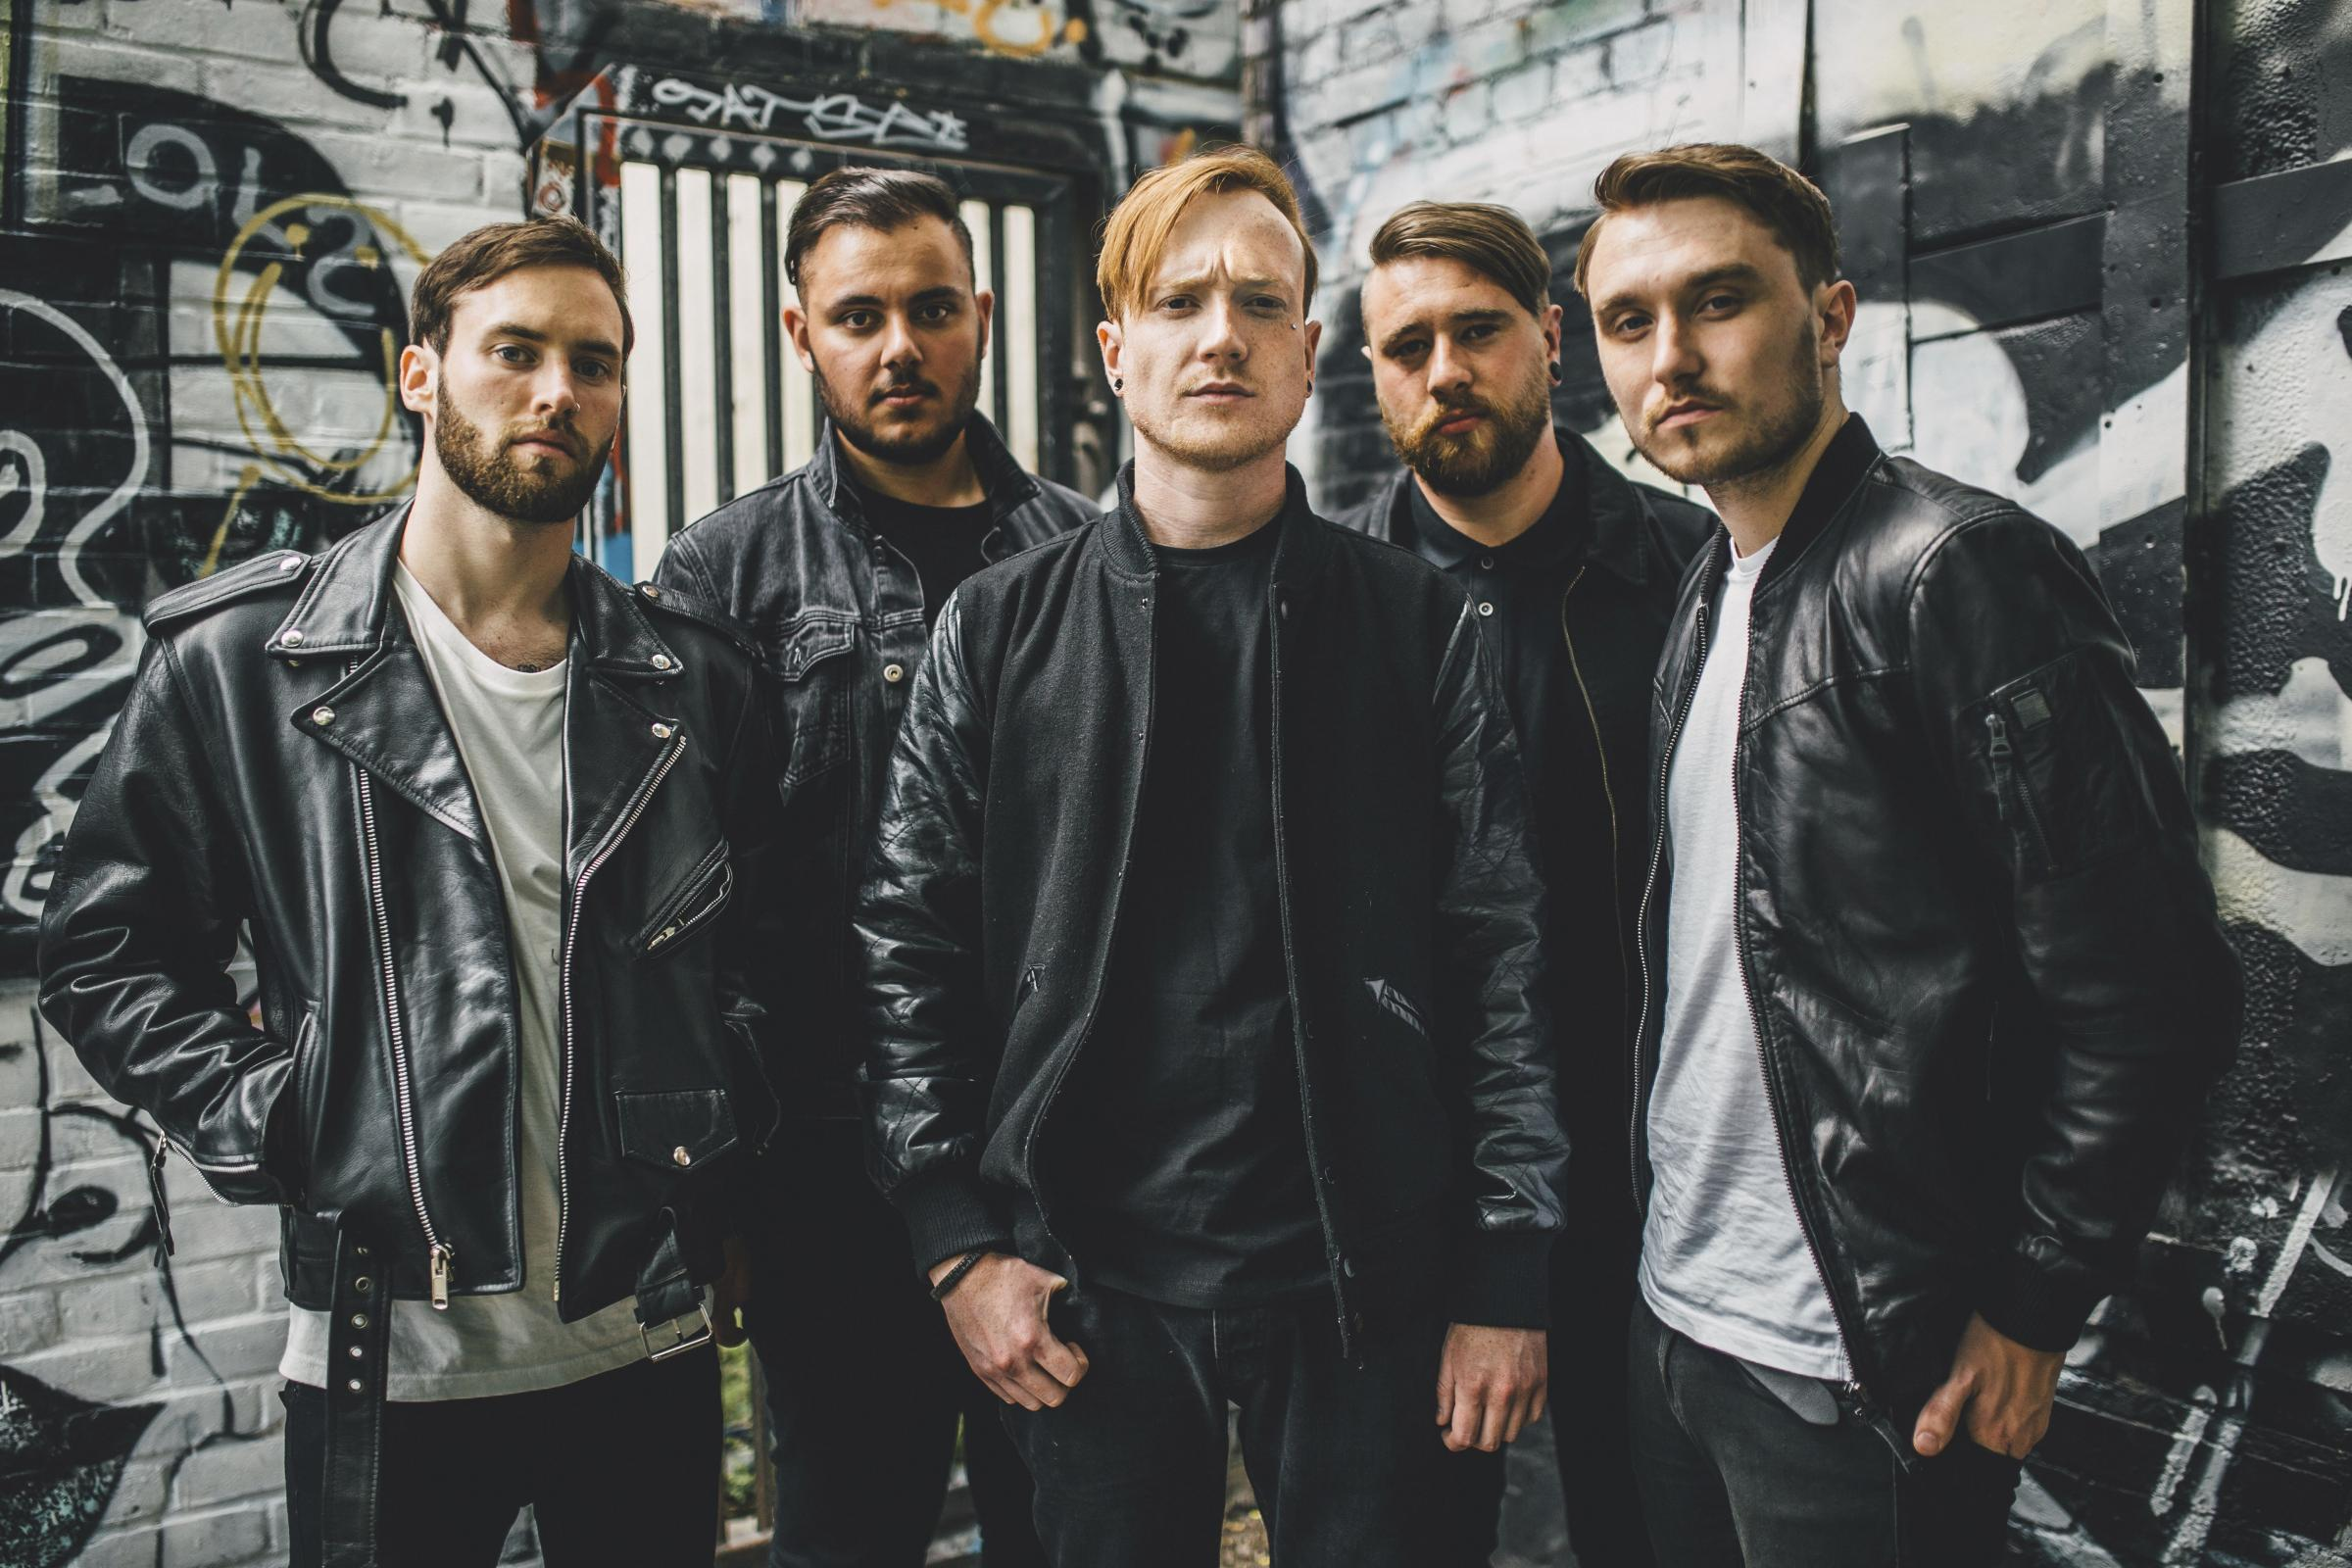 Acclaimed rockers Mallory Knox to headline Southampton's Takedown Festival